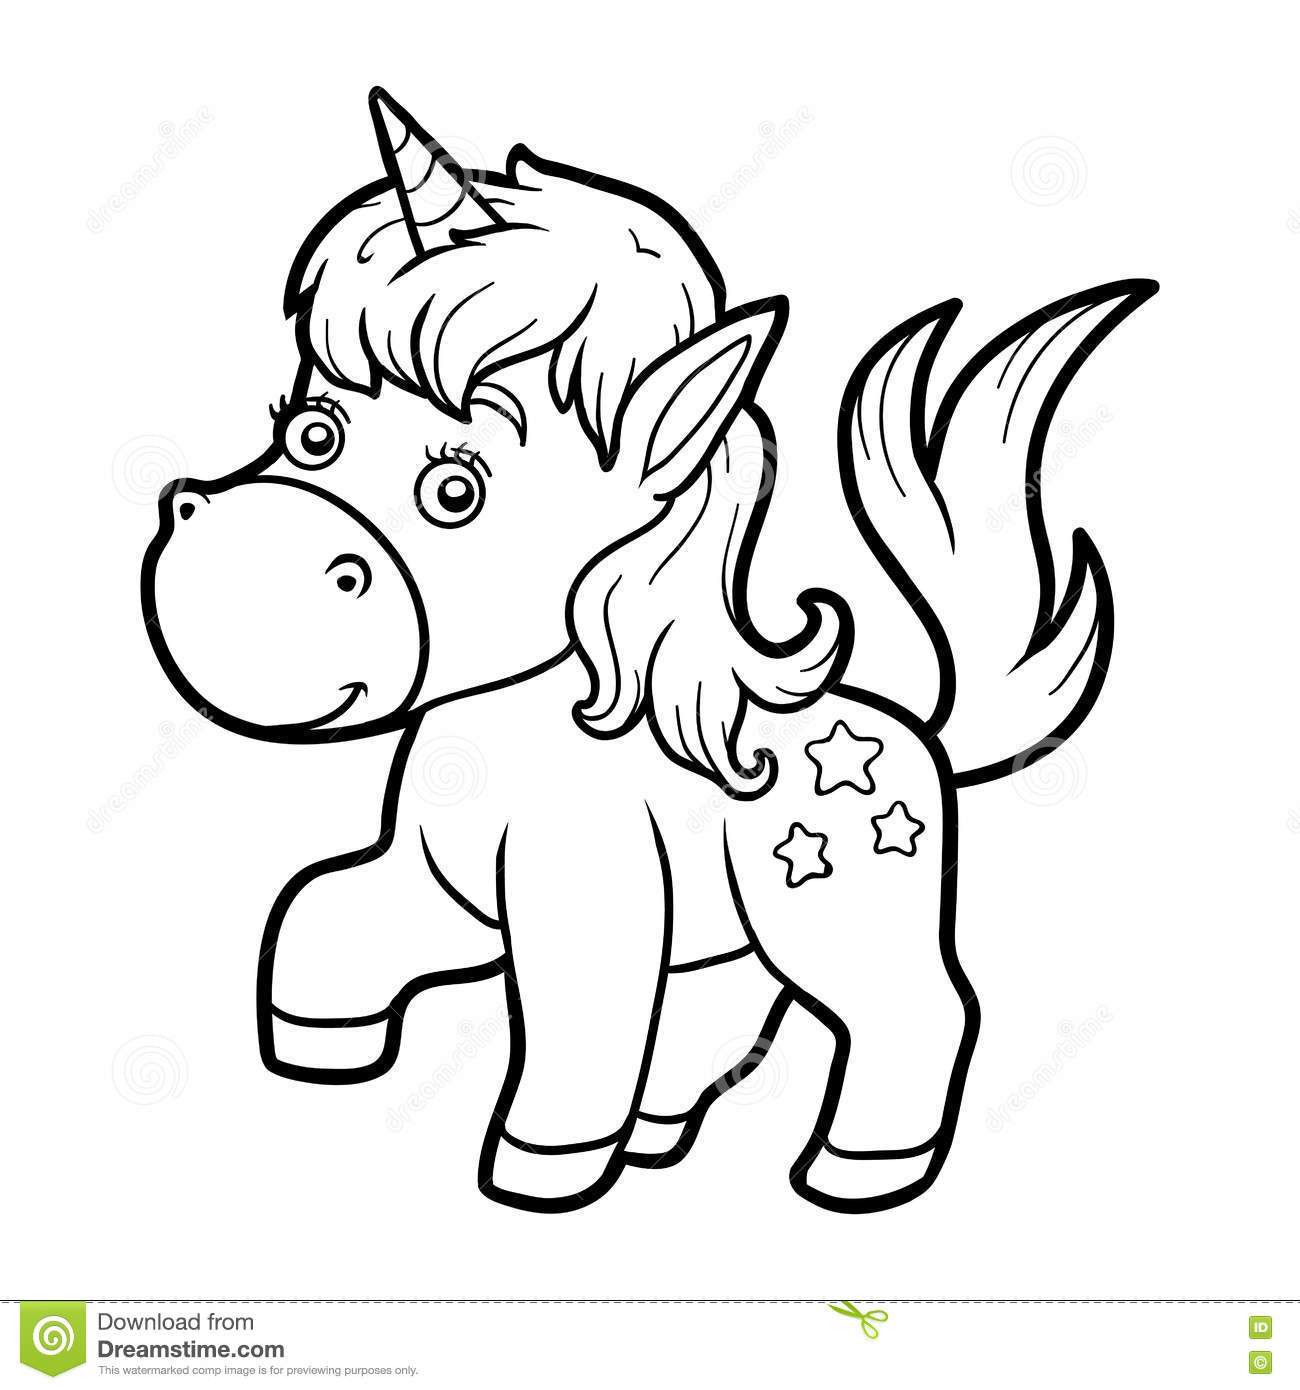 The zoology coloring book - Coloring Book For Children Little Unicorn Stock Vector